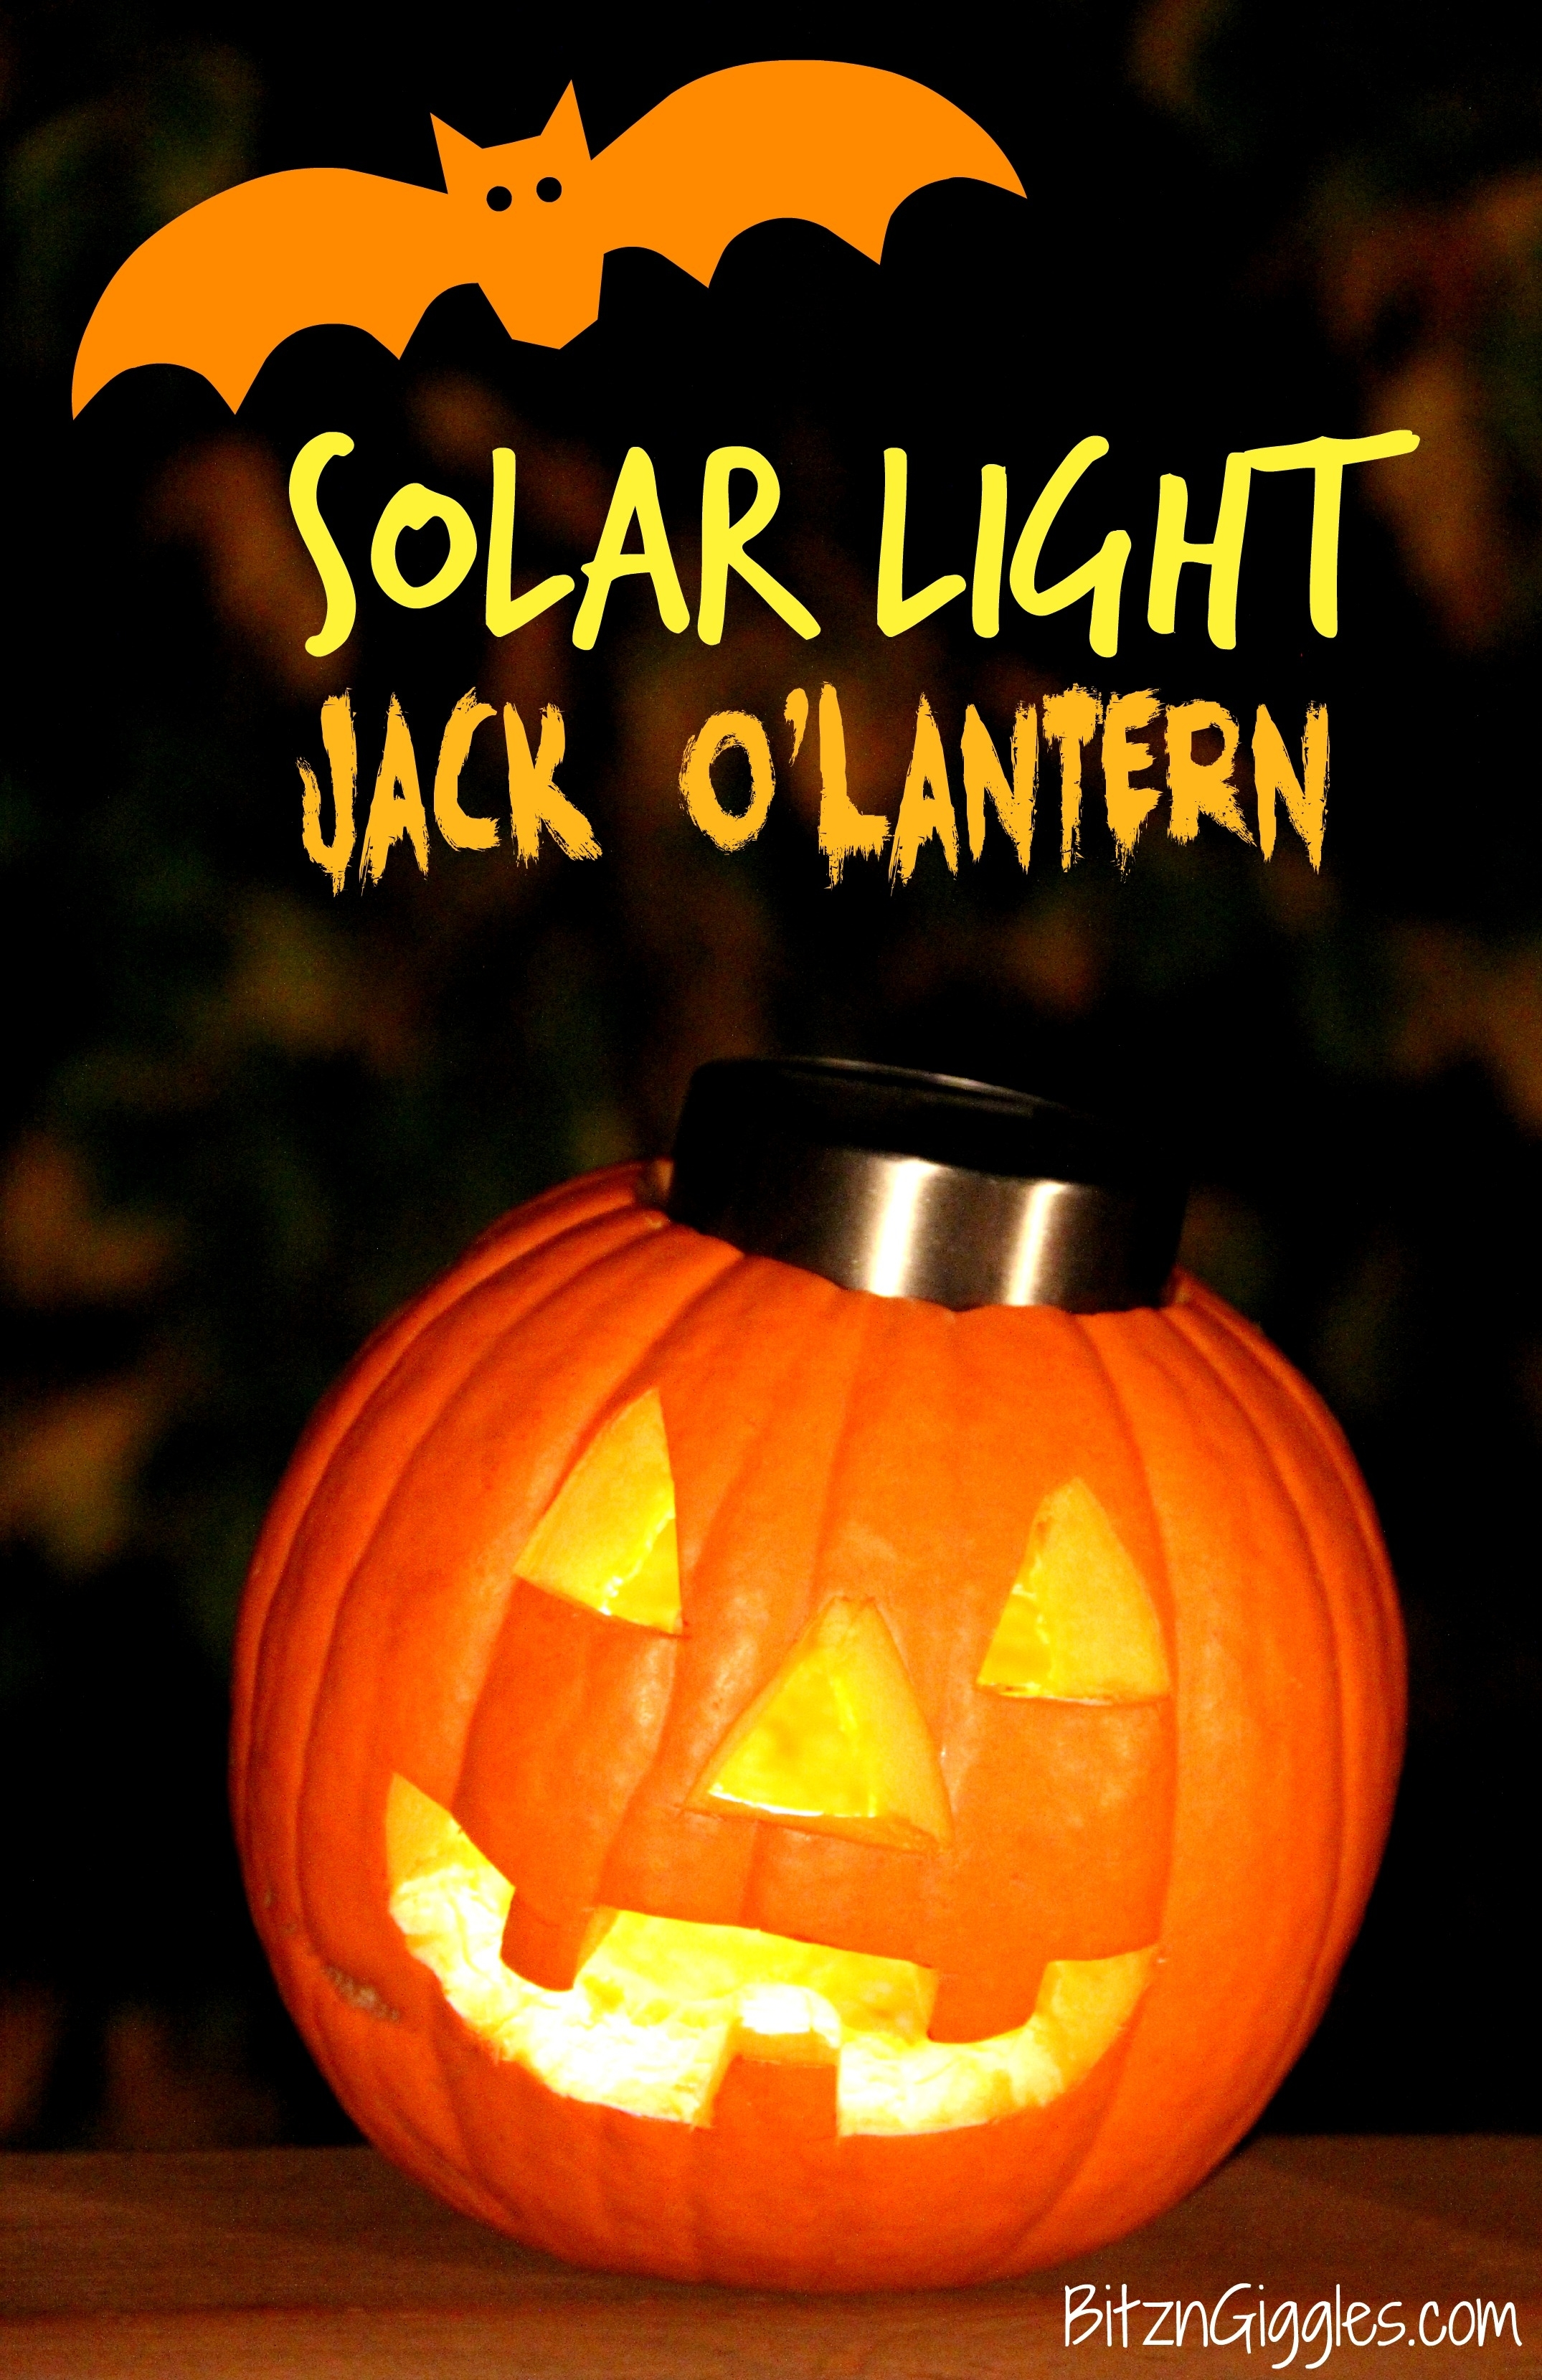 Solar Light Jack O'lantern for Outdoor Pumpkin Lanterns (Image 18 of 20)